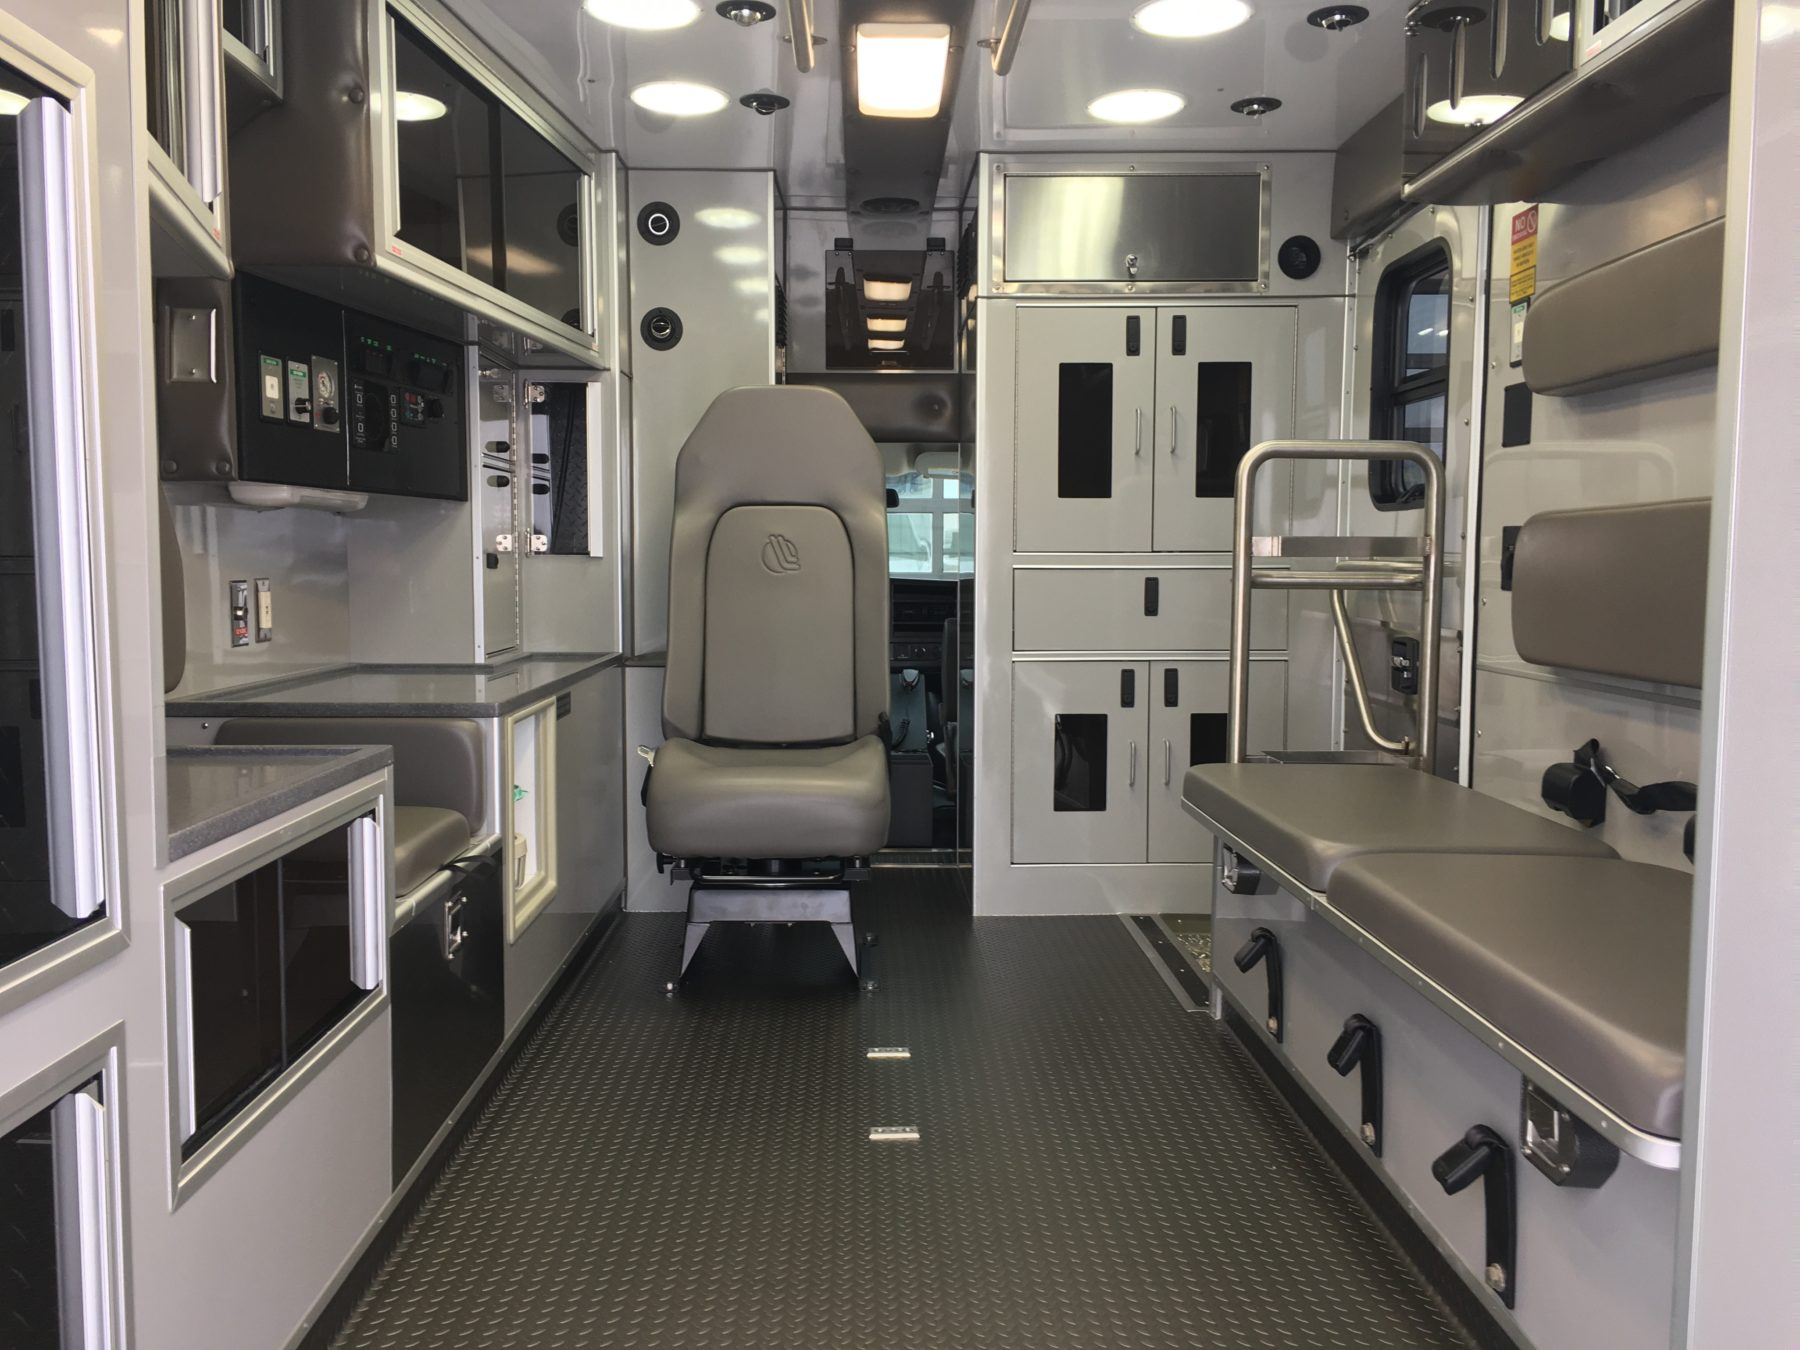 2020 Chevrolet G4500 Type 3 Ambulance For Sale – Picture 2